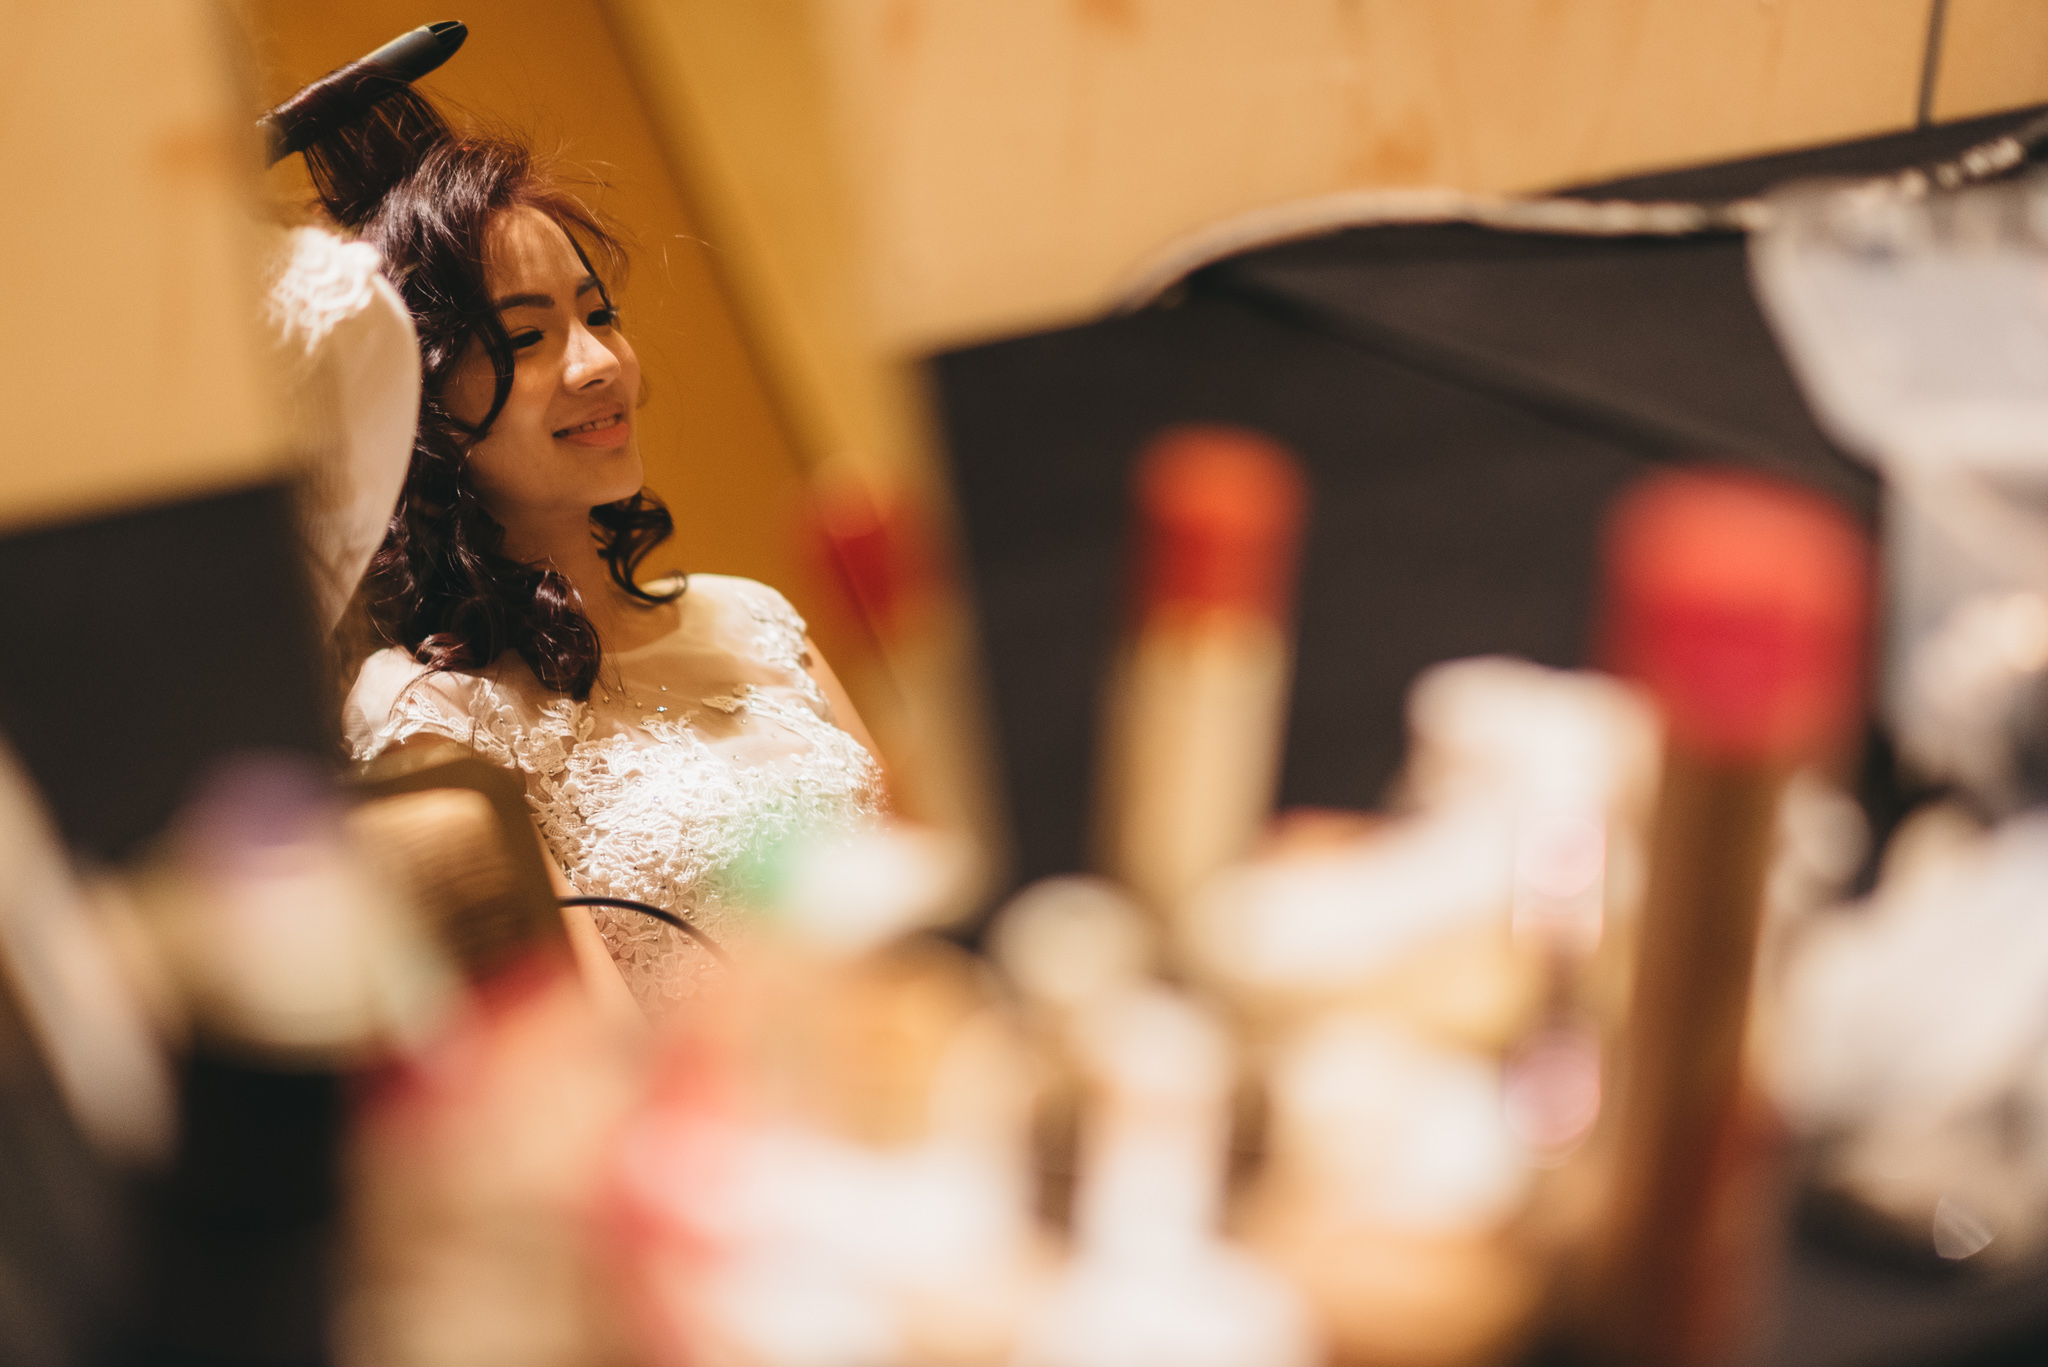 Fiona & Terence Wedding Day Highlights (resized for sharing) - 167.jpg